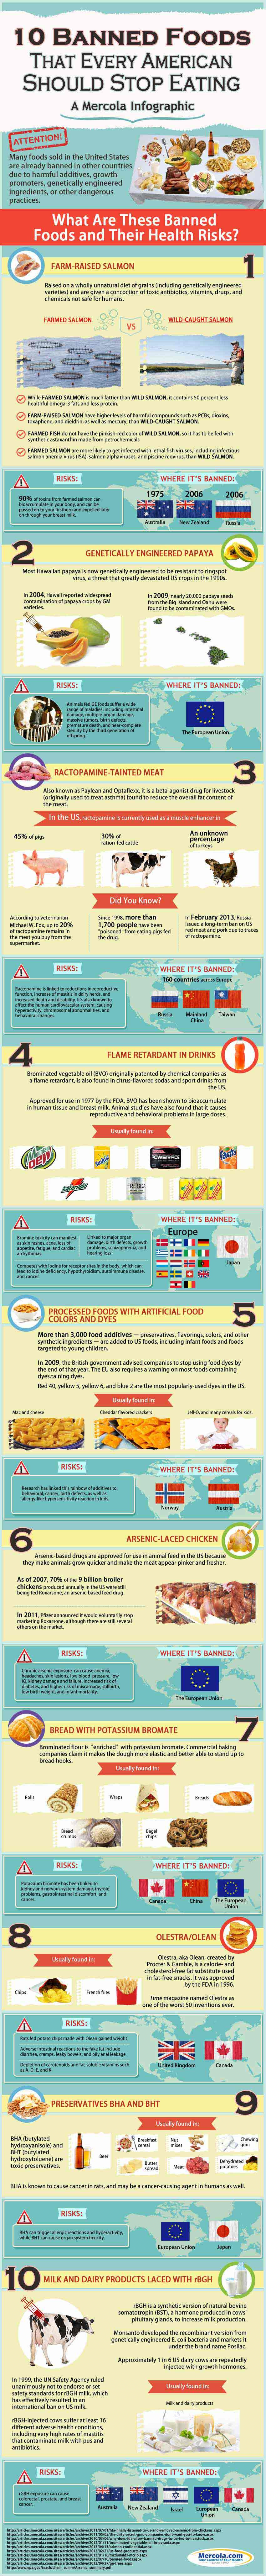 banned-foods-infographic.jpg